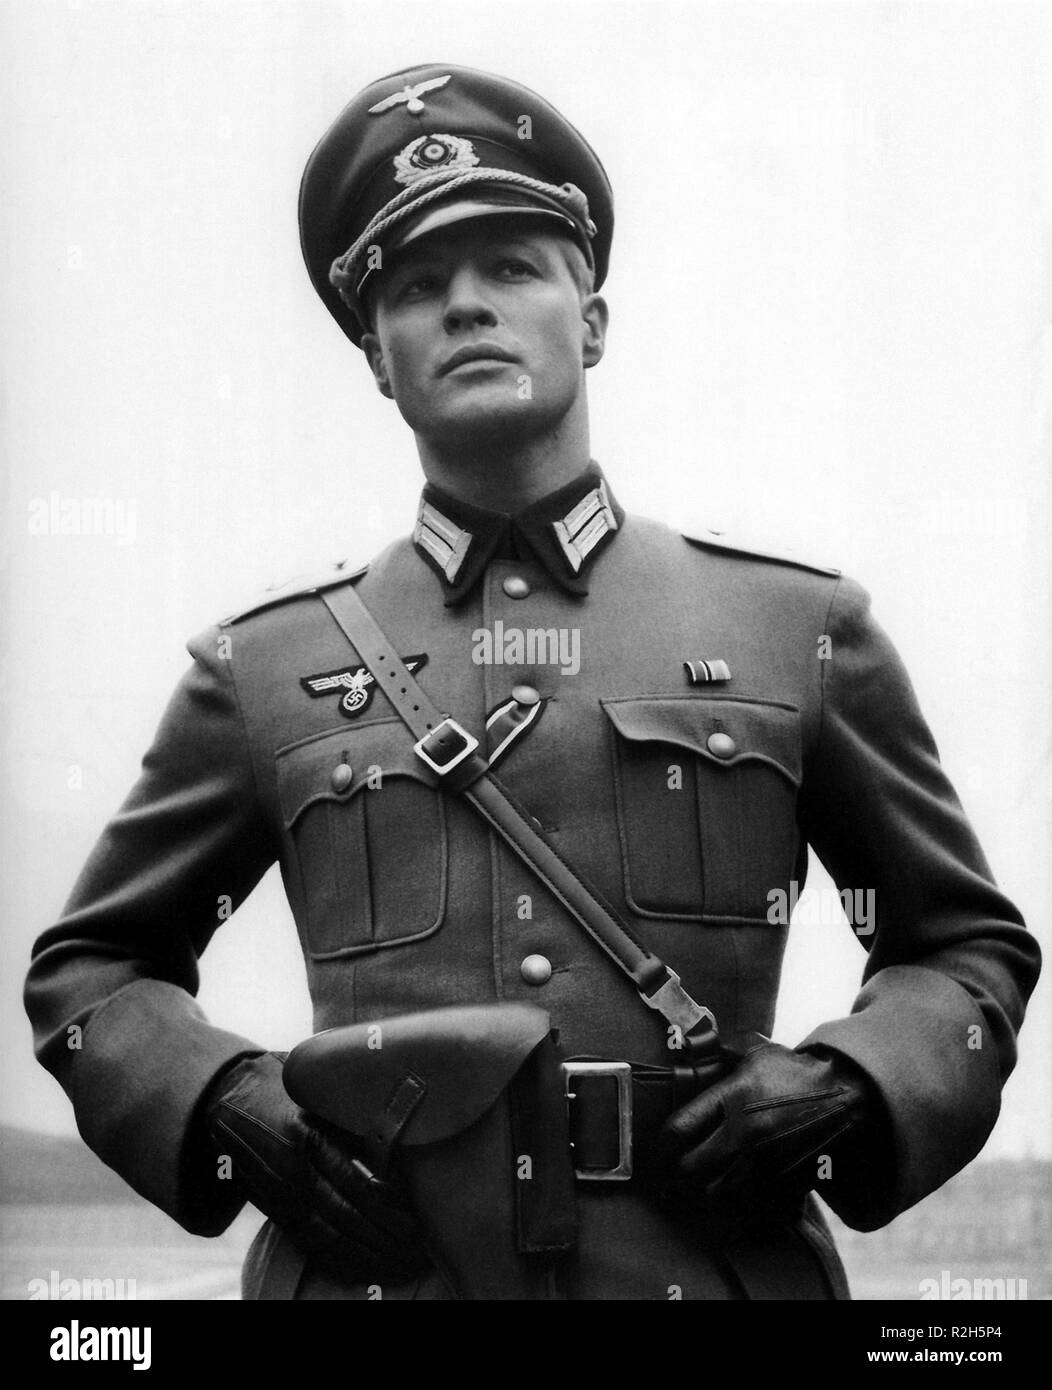 Ww2 German Uniform Stock Photos & Ww2 German Uniform Stock